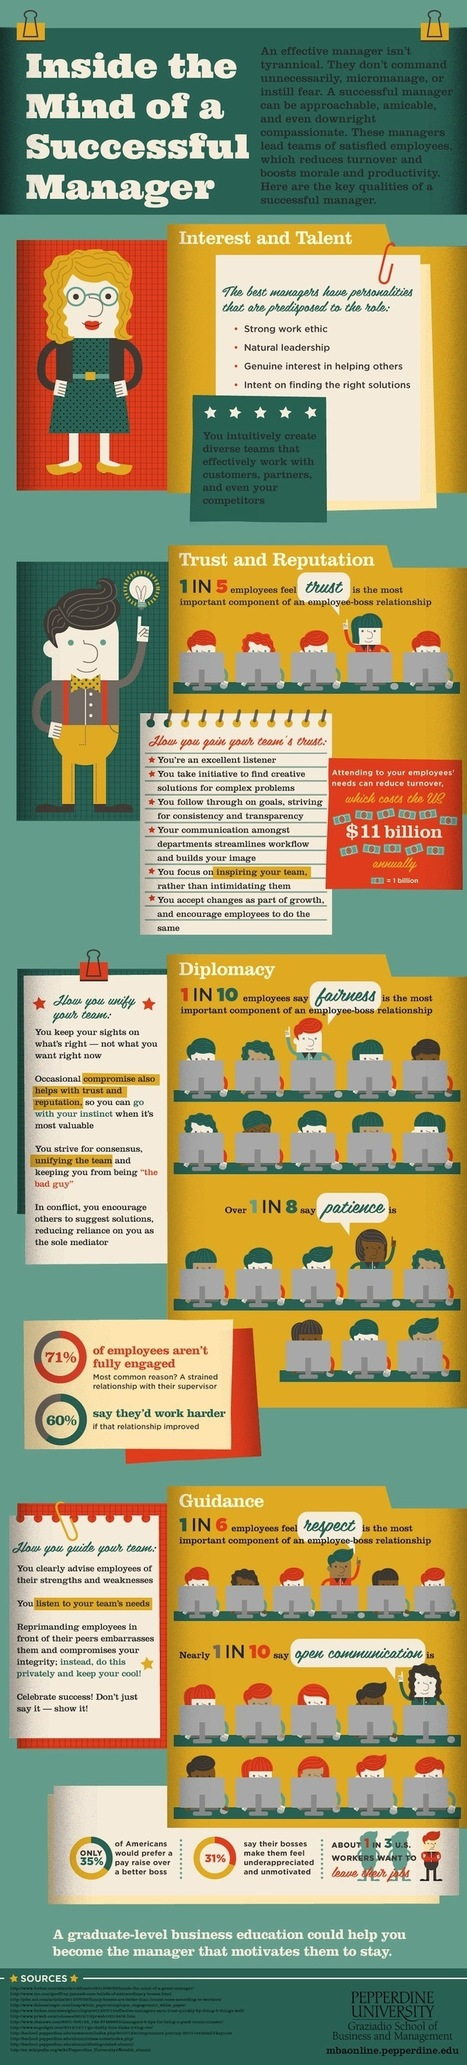 What Makes Up a Successful Manager? [INFOGRAPHIC] | Gestion du talent | Scoop.it